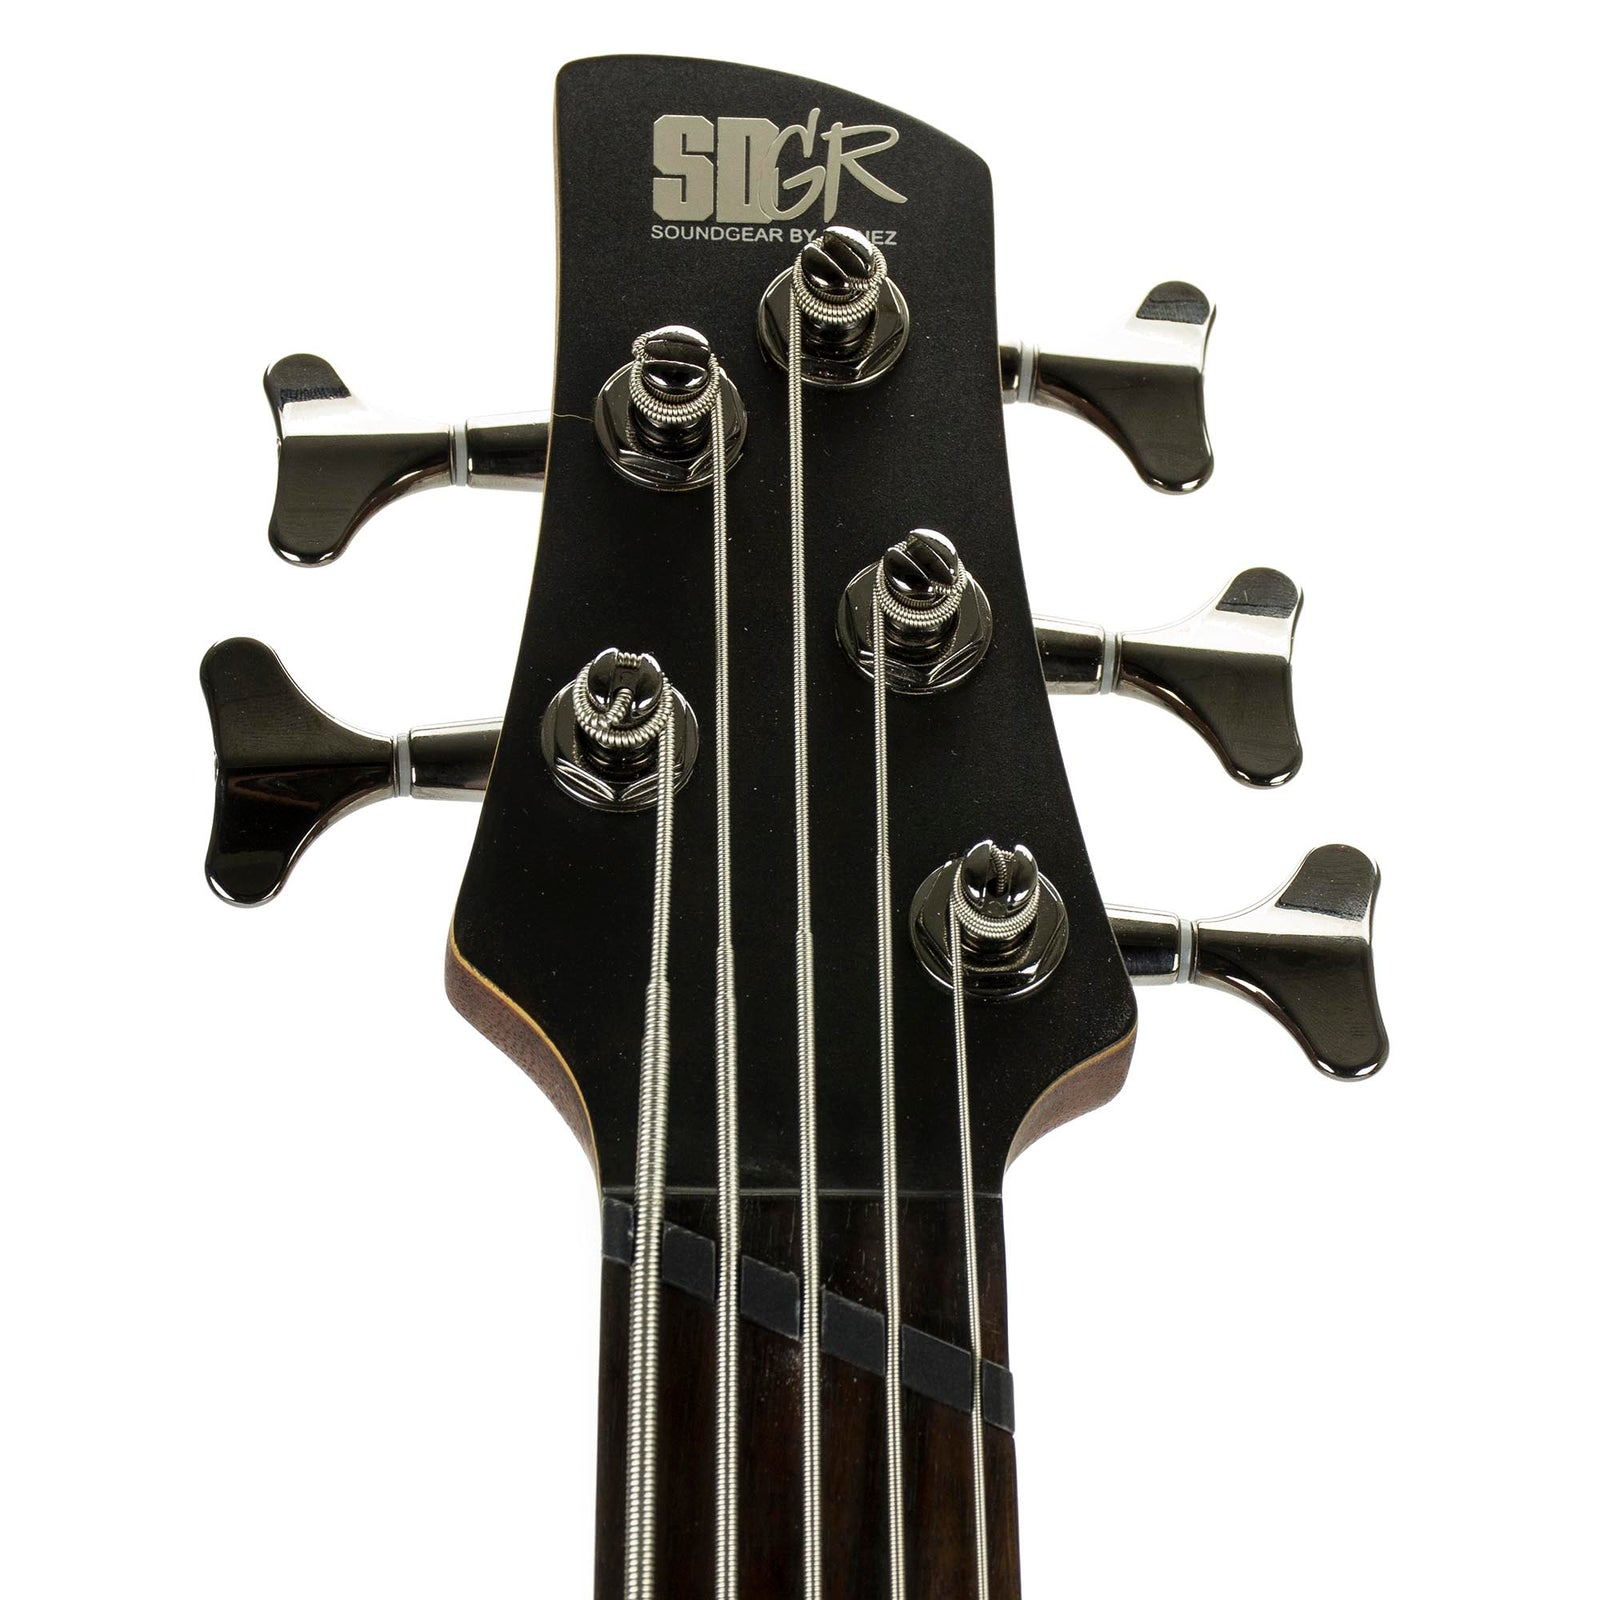 Ibanez Bass Workshop Series 5-String Fanned Fret Bass SRFF805 - Walnut Flat - Used